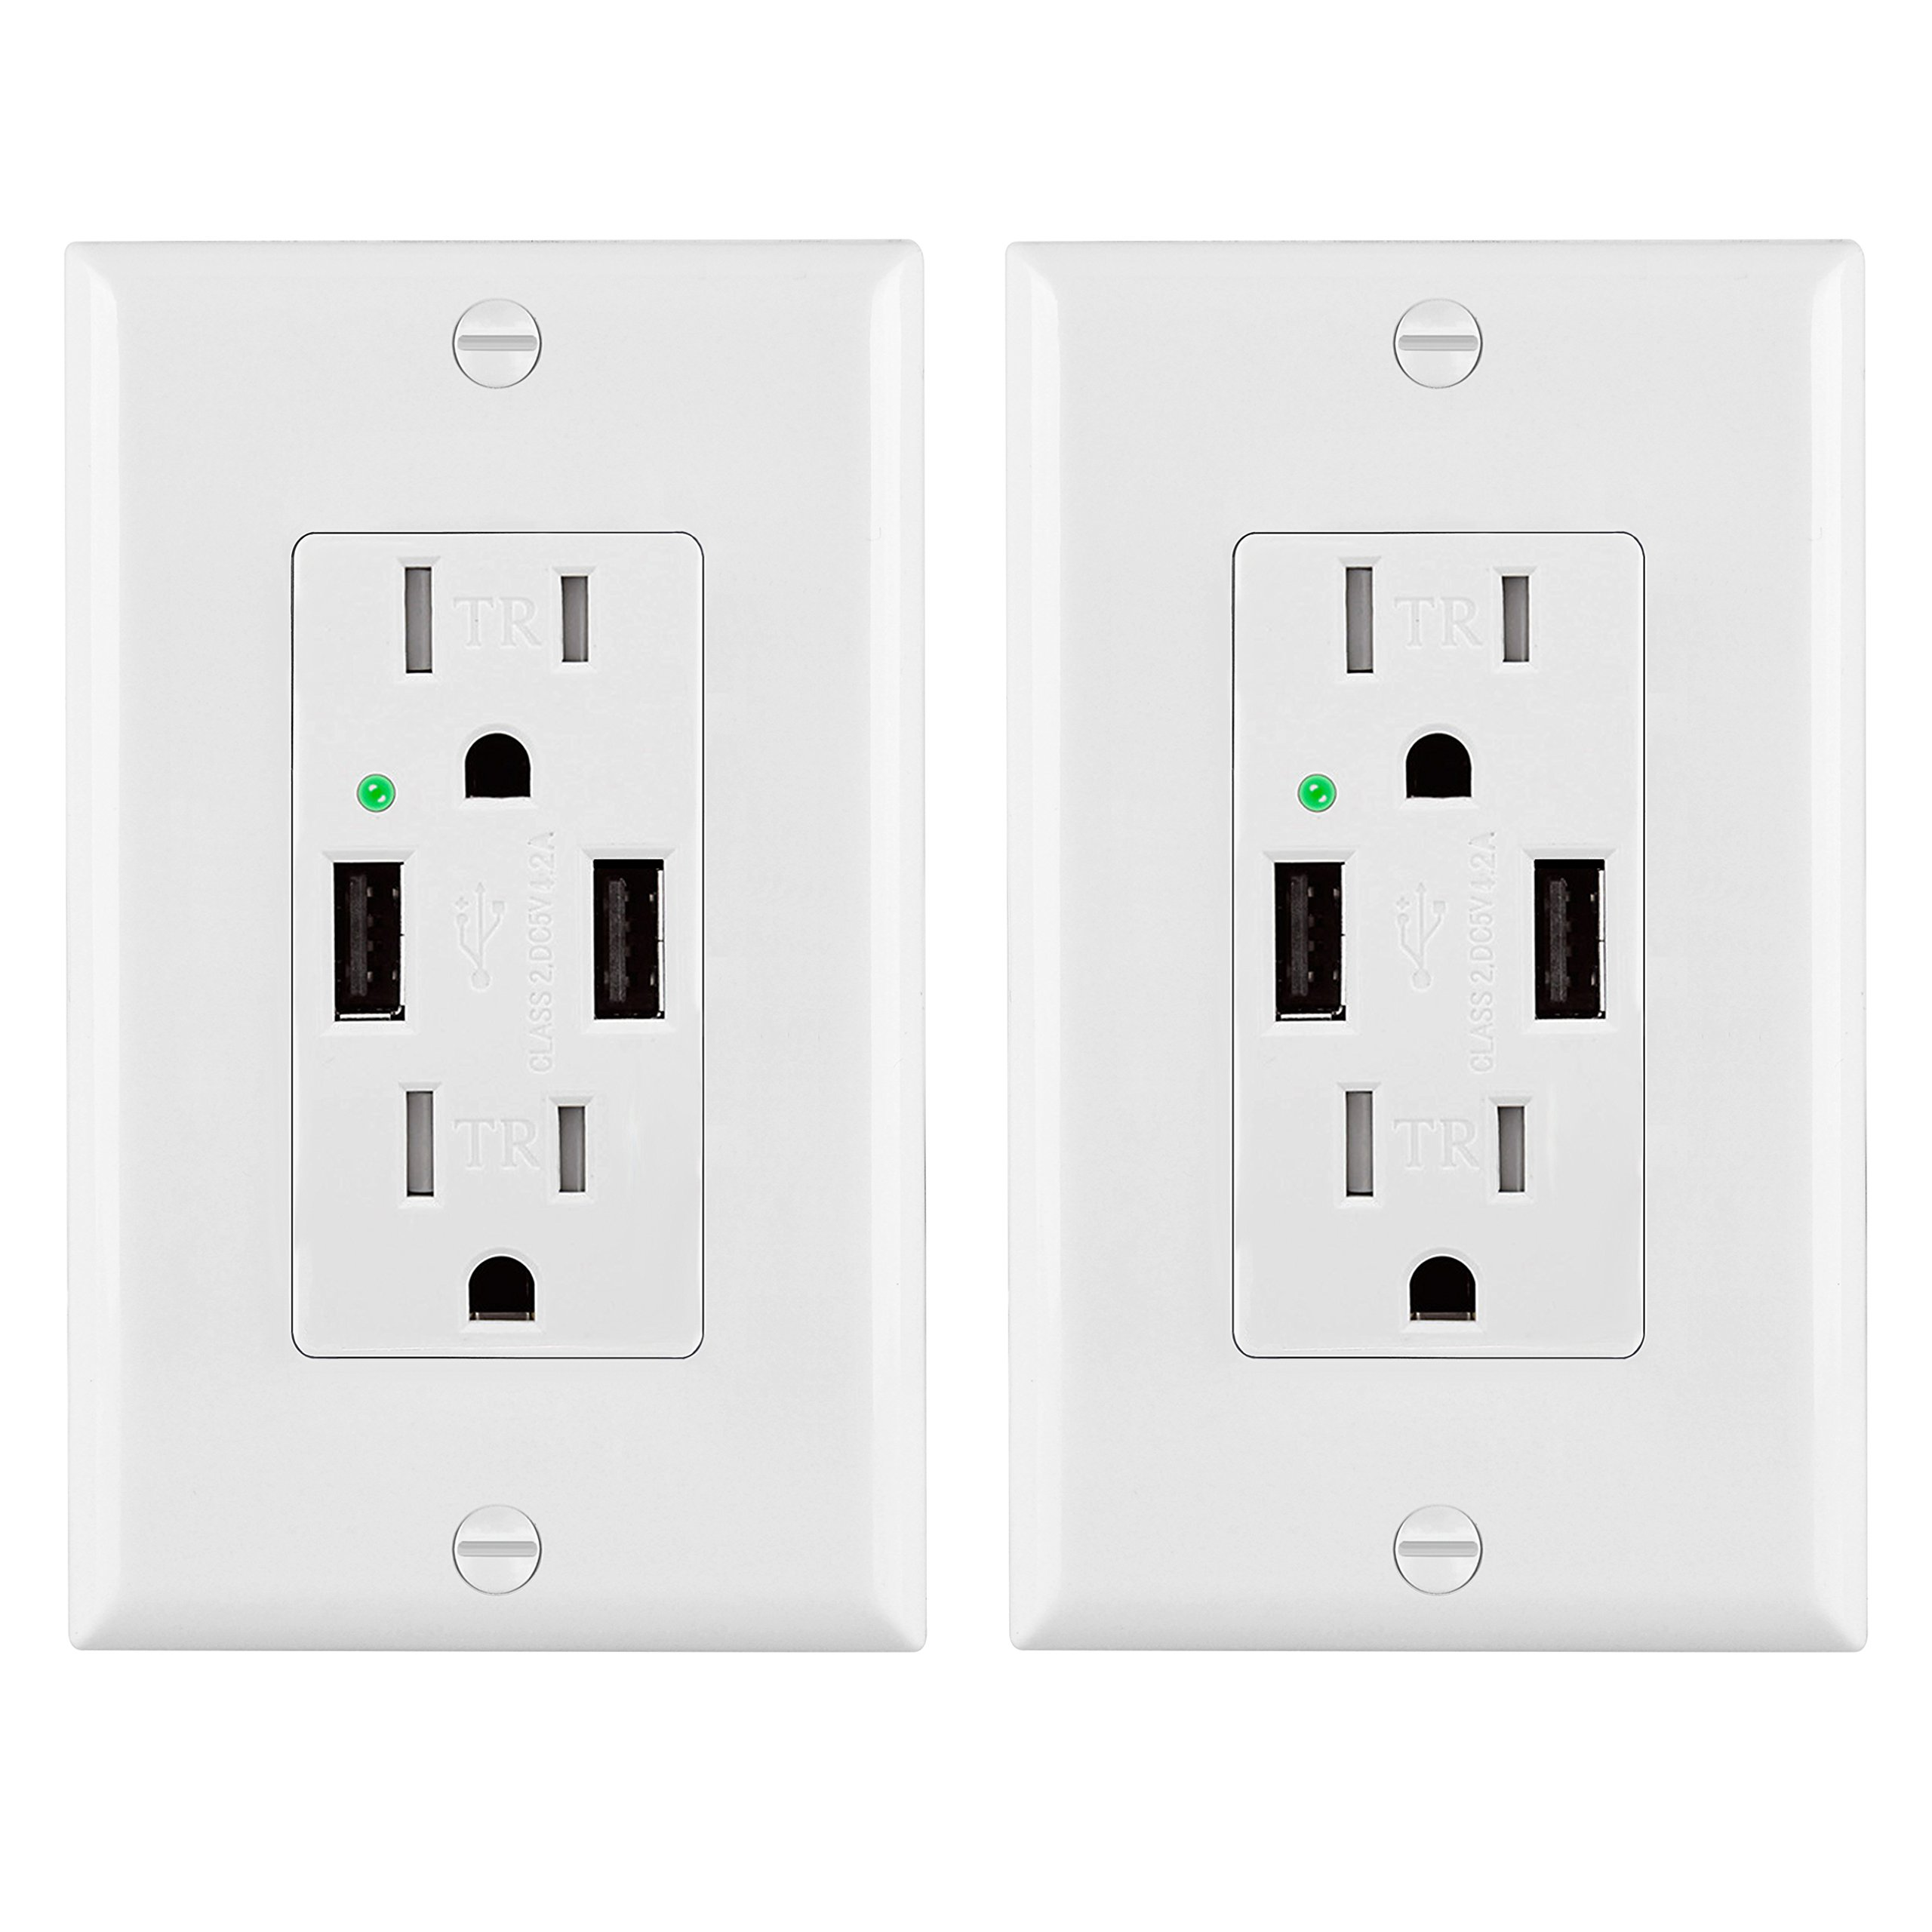 [2 Pack] BESTTEN Upgraded USB Wall Receptacle Outlet (15A/1875W) with 2 USB Chargers (4.2A Shared), Decorator Wall Plate Included, UL Certified, White